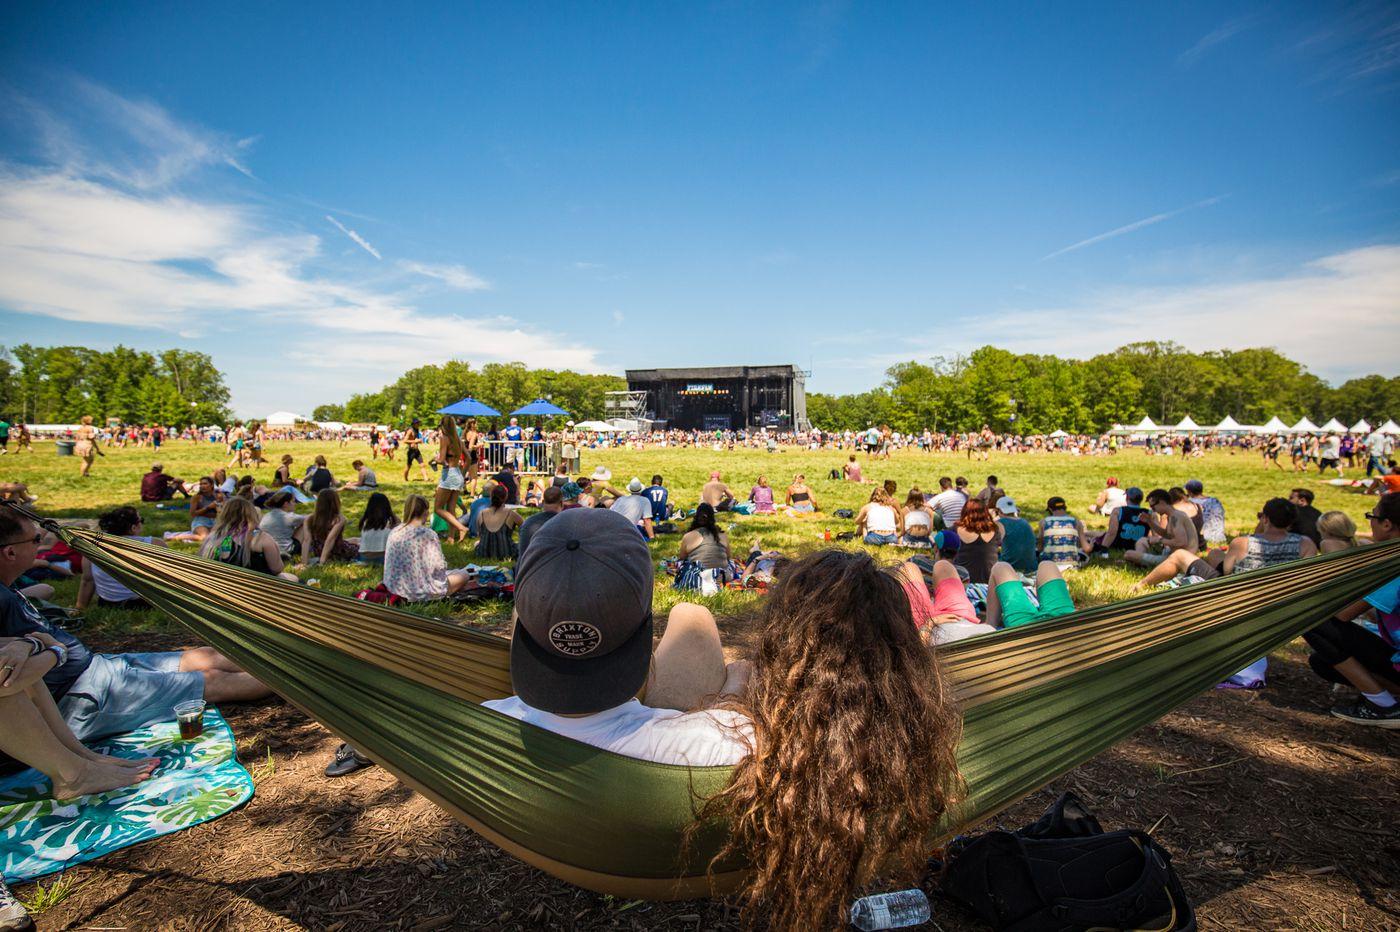 Philadelphia woman, 20, found dead at Firefly Music Festival